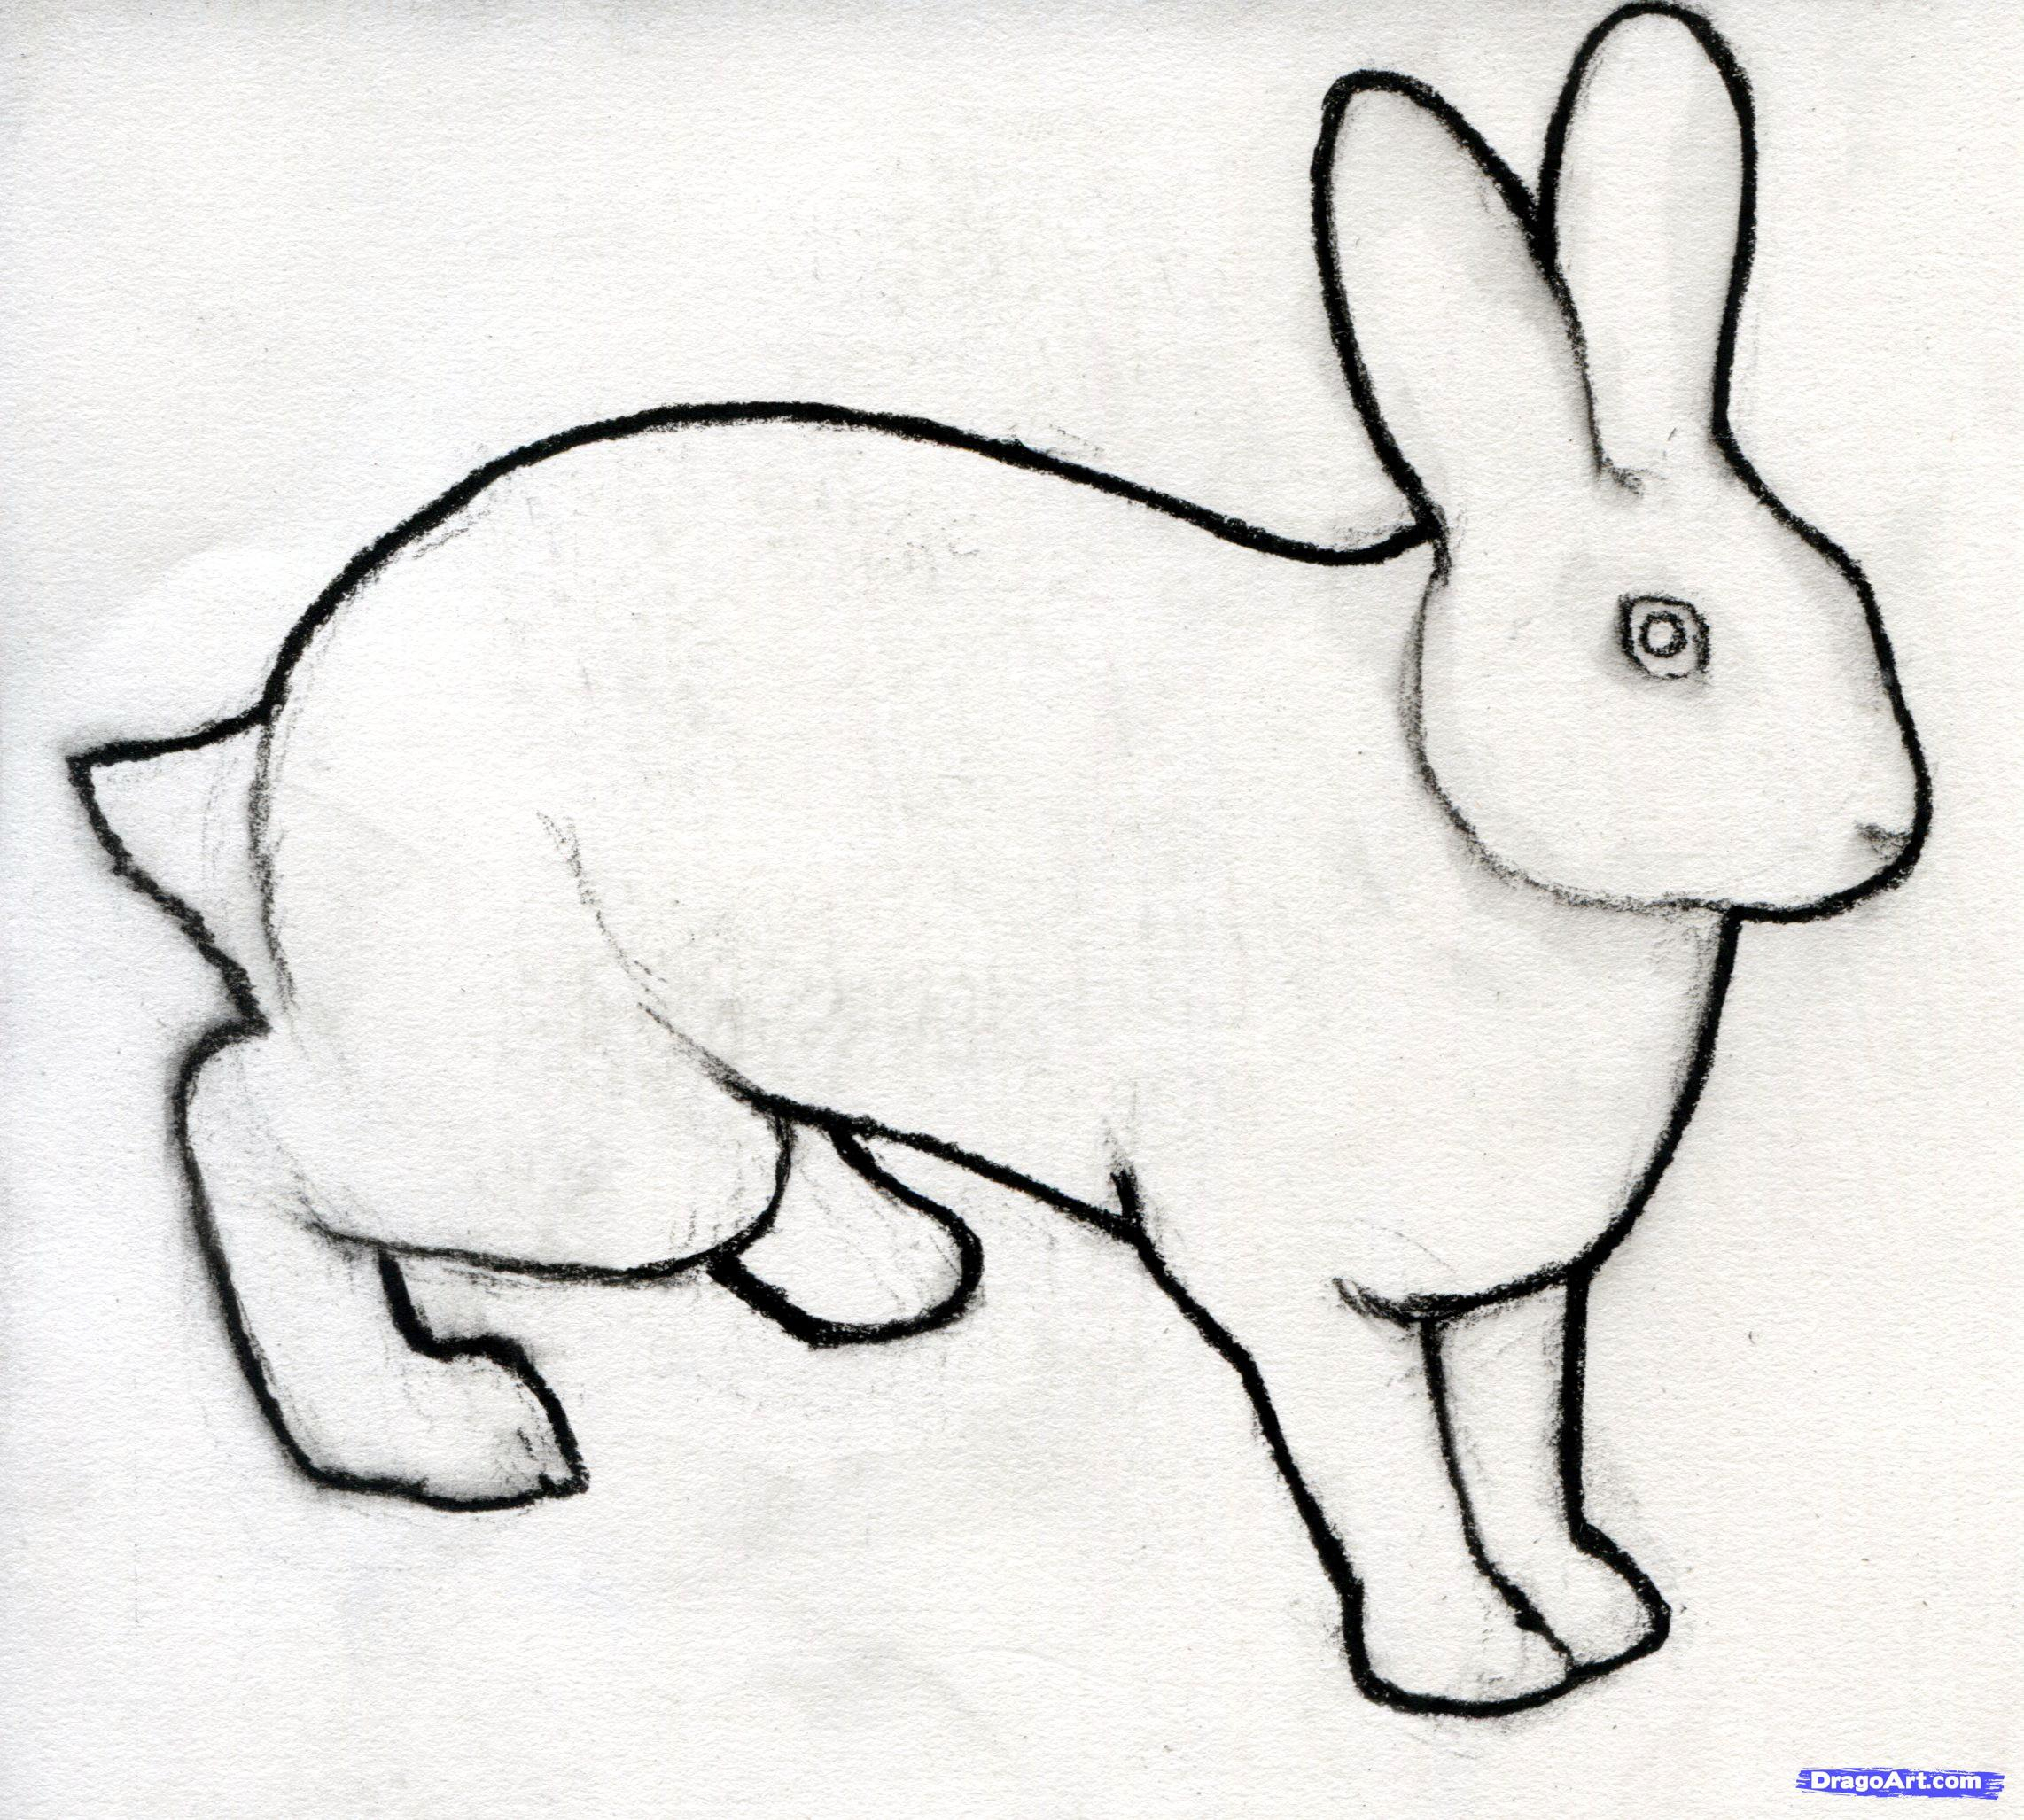 Drawing with animals download. Free clipart drawings of rabbits in the forest